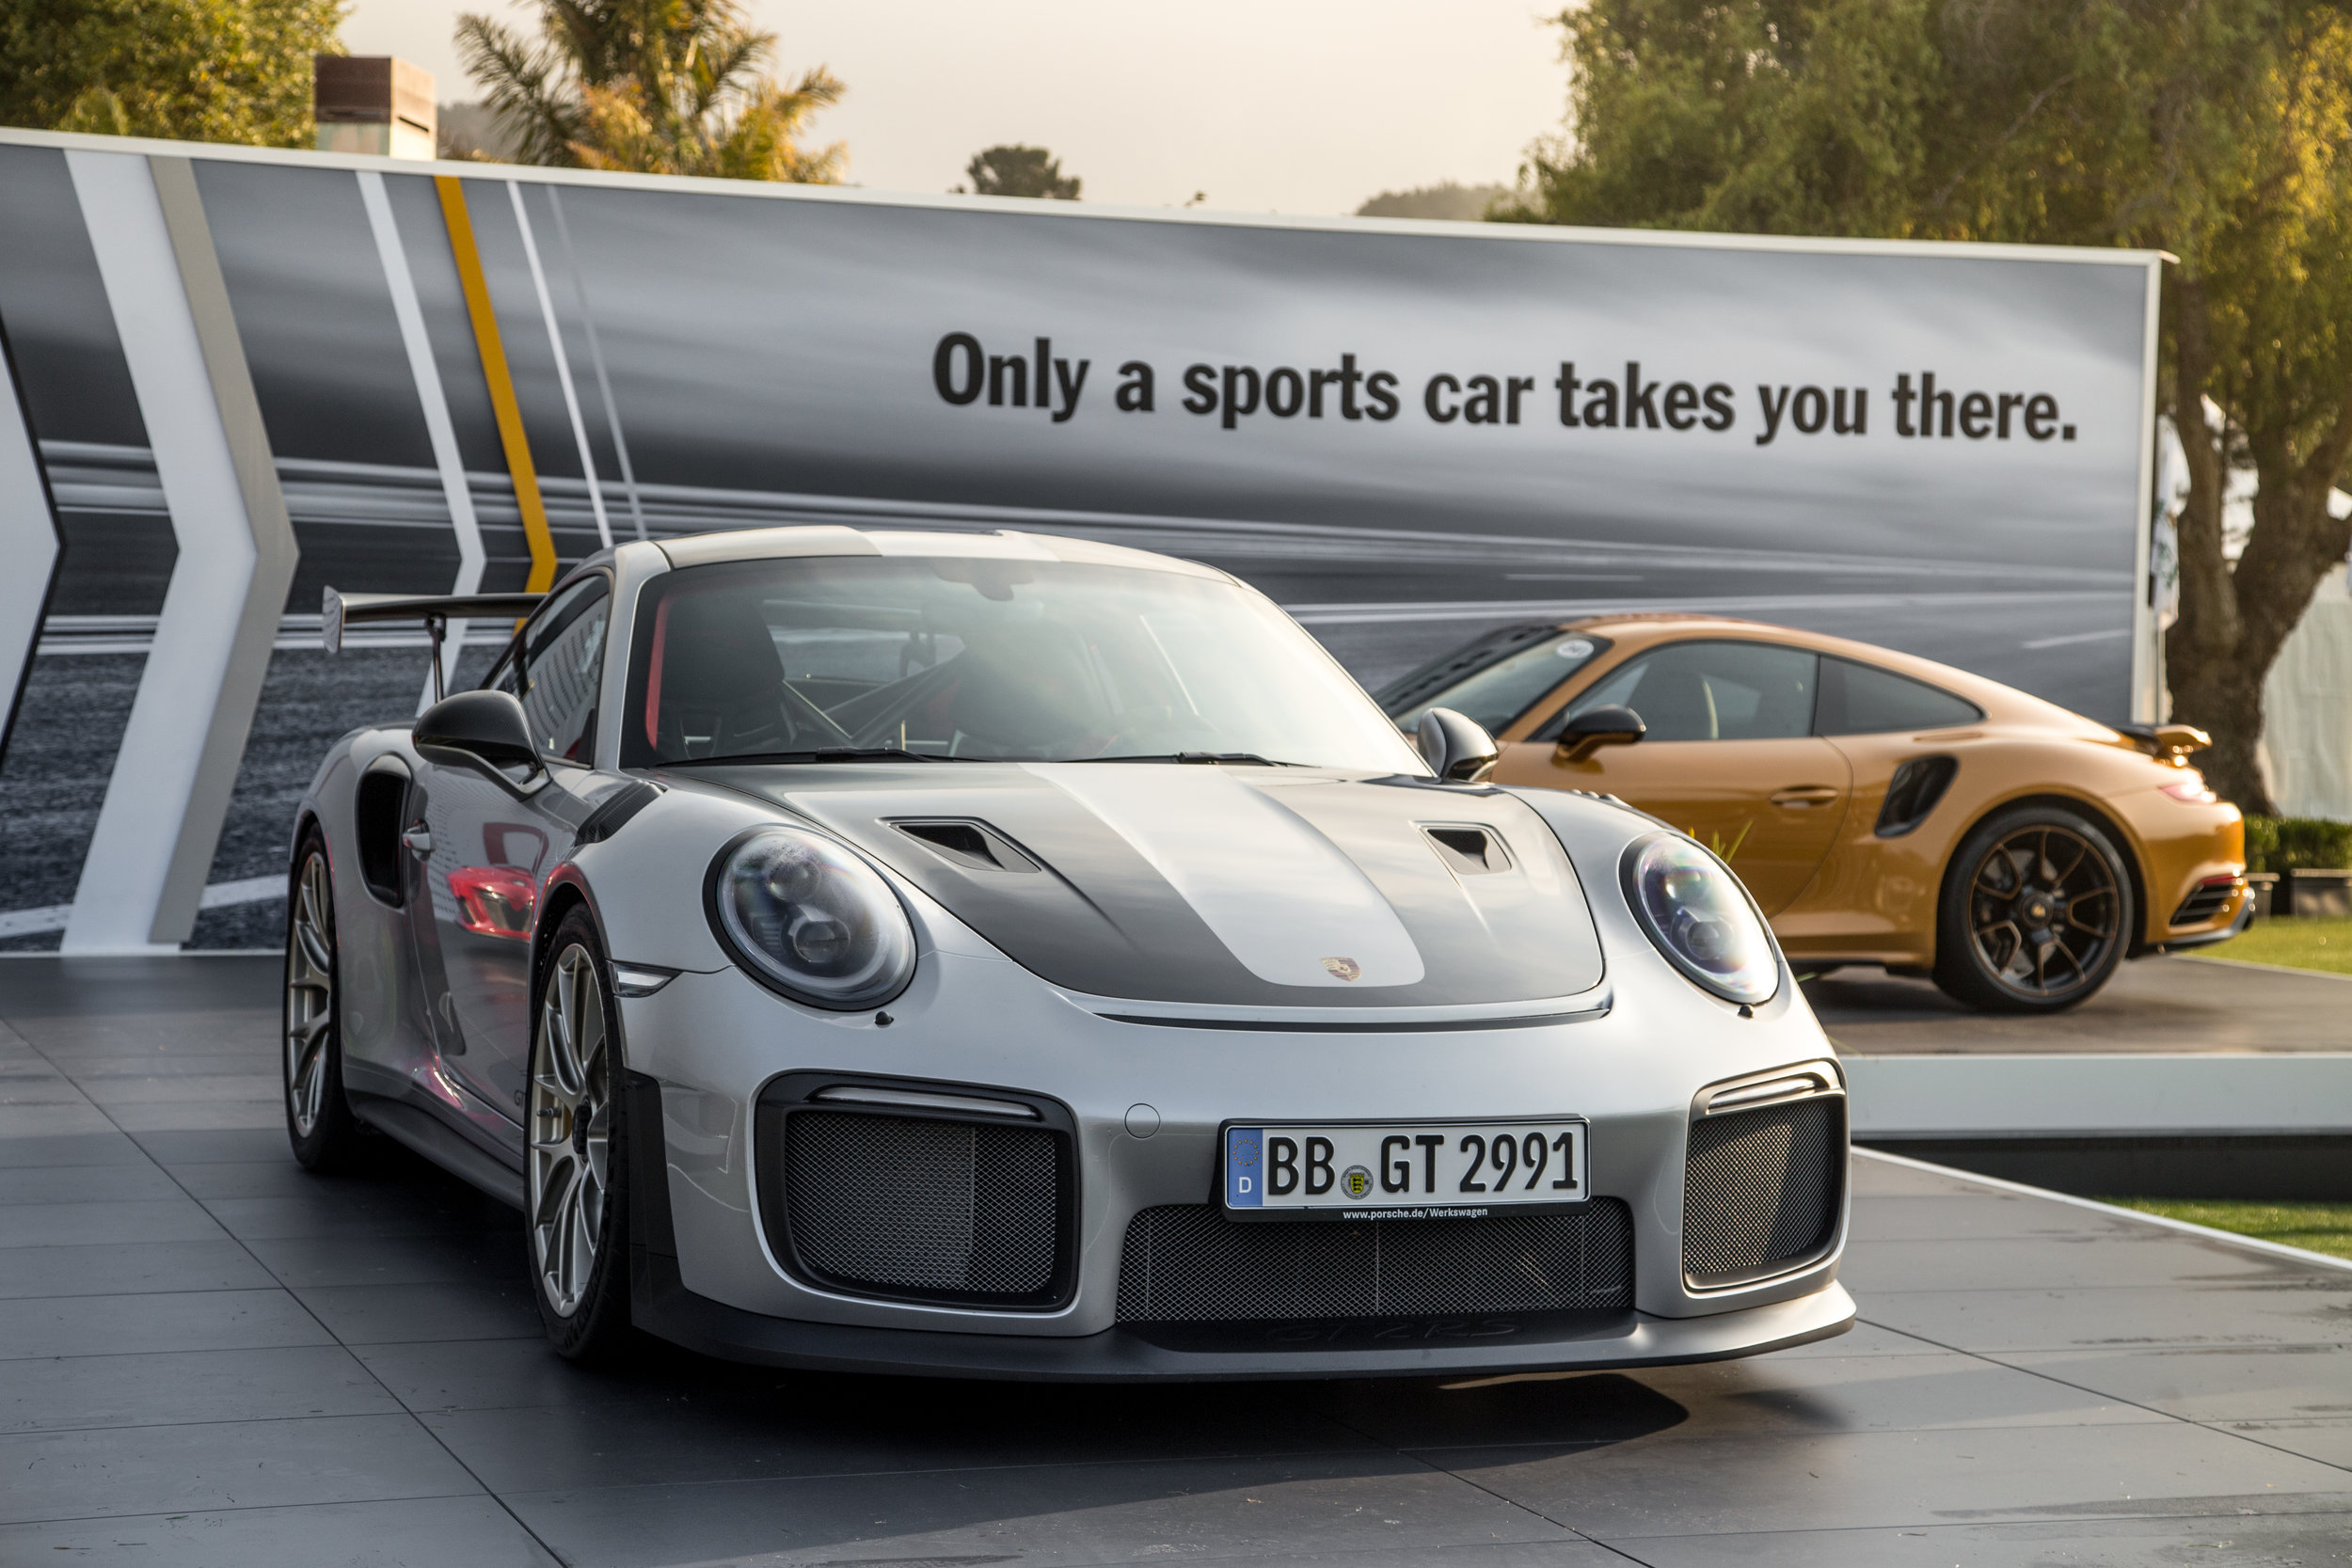 IMG_8393 Remarkable Porsche 918 Spyder On the Road Cars Trend